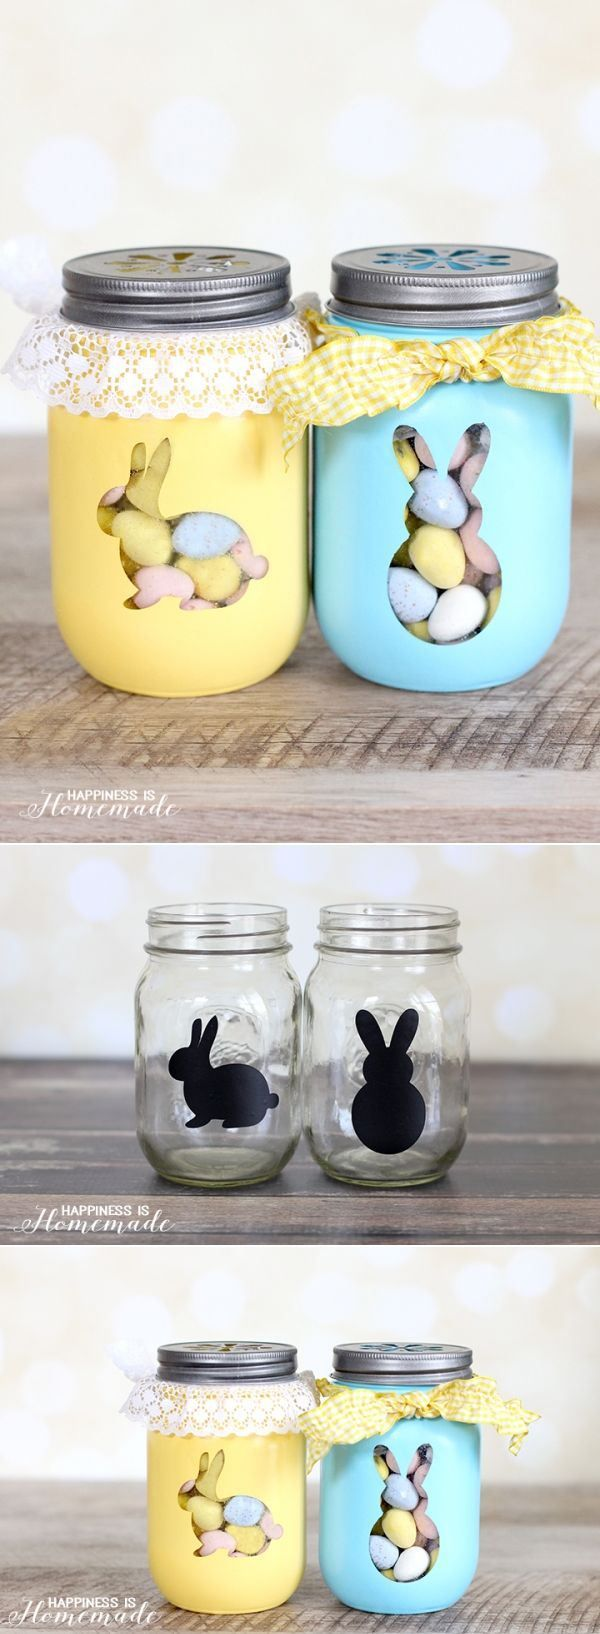 Best 25 other diy ideas ideas on pinterest unique diy best 25 other diy ideas ideas on pinterest unique diy valentines gifts diy nails and nail art diy negle Image collections